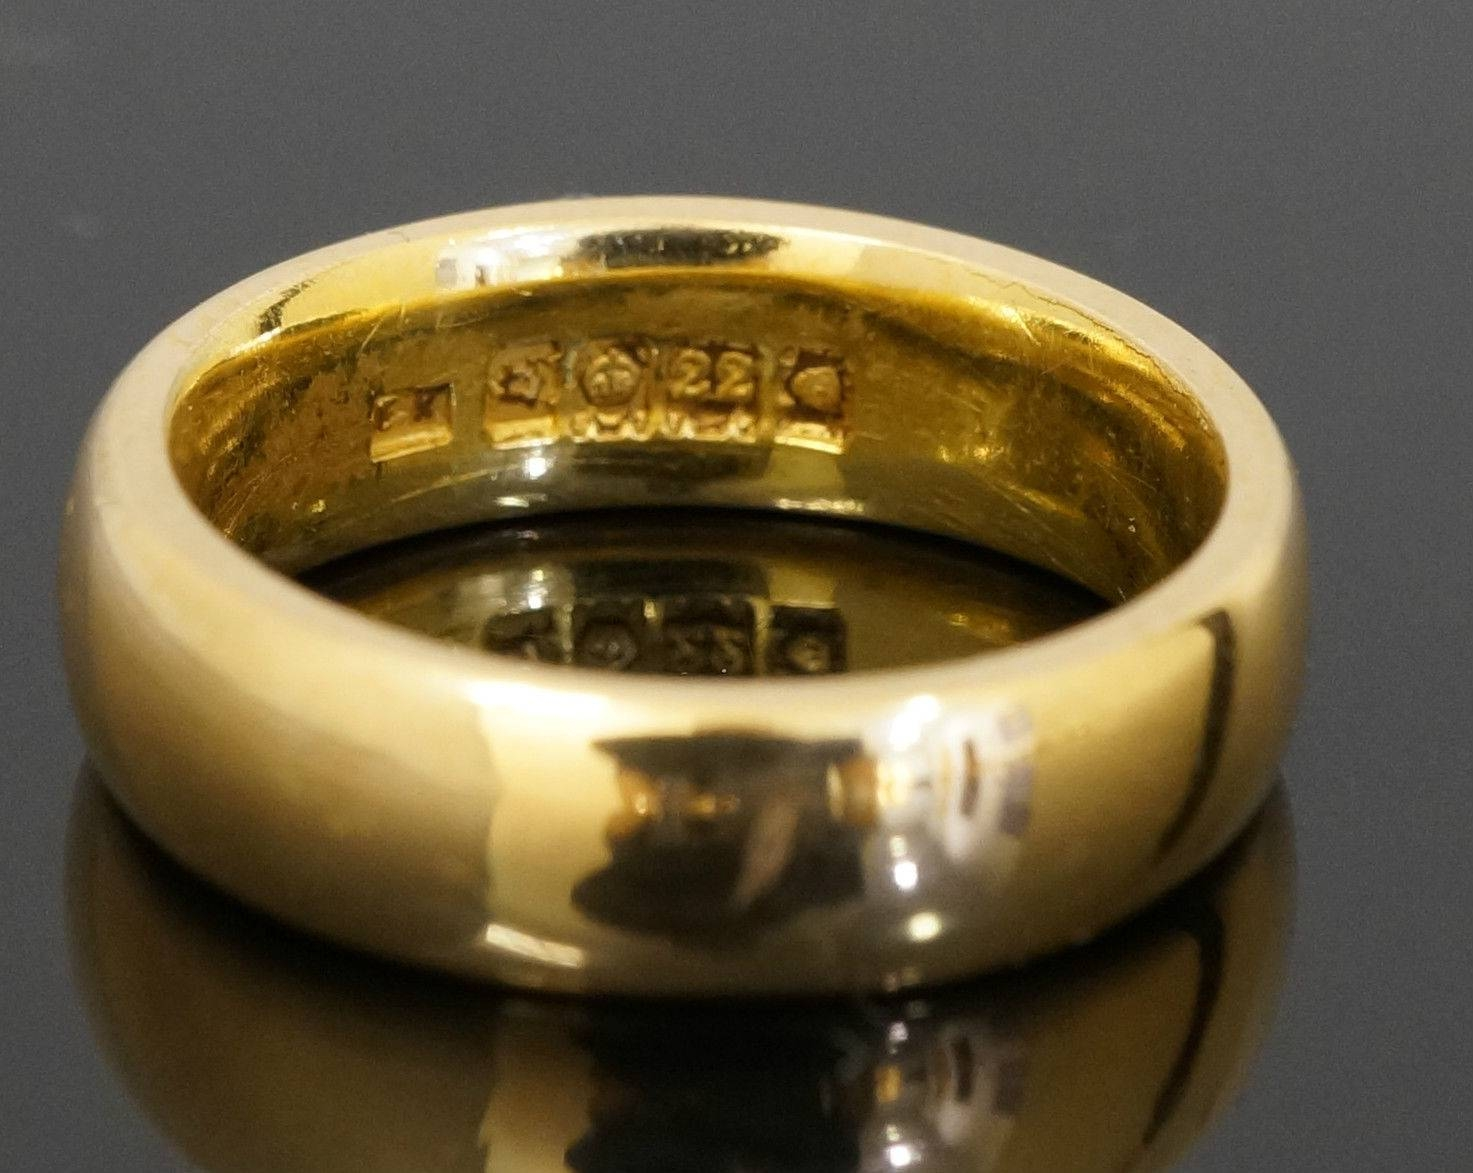 22Carat Yellow Gold Plain D Shaped Wedding Ring / Band (Size O Throughout 22 Carat Gold Wedding Rings (View 7 of 15)